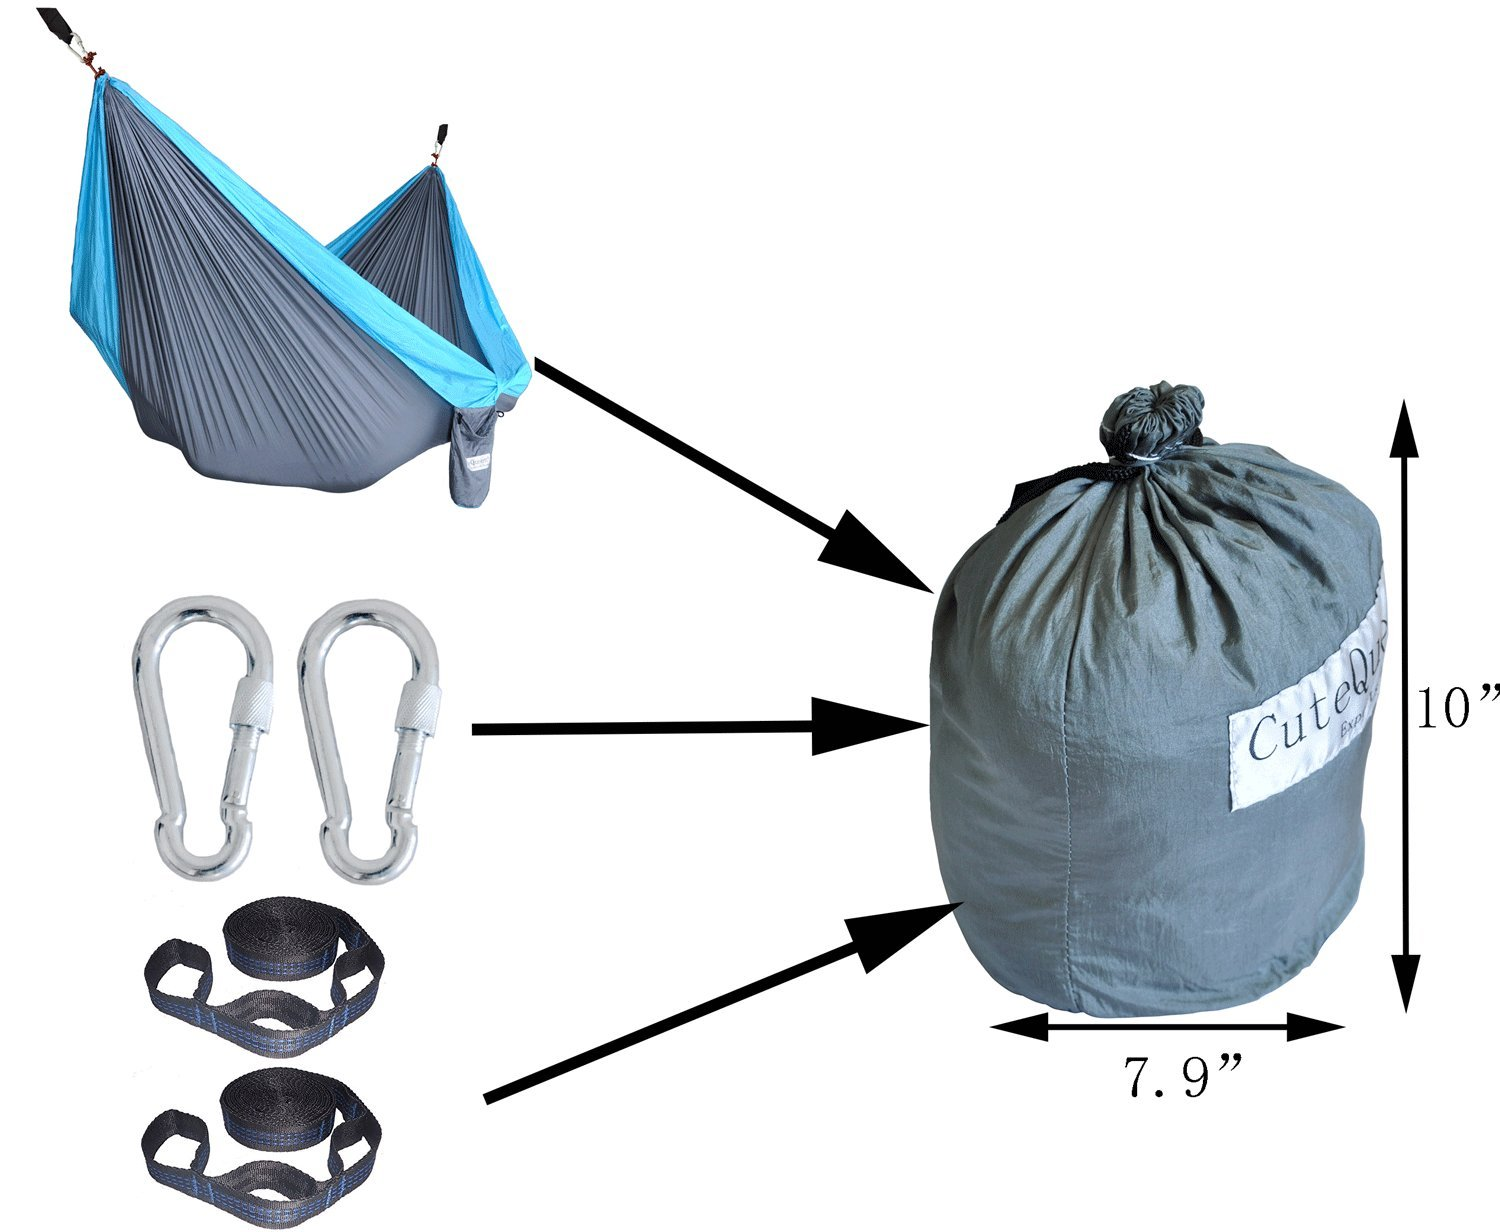 Cutequeen Trading Parachute Nylon Fabric Hammock with Tree Straps;Color: Grey/Sky Blue by Cutequeen (Image #3)